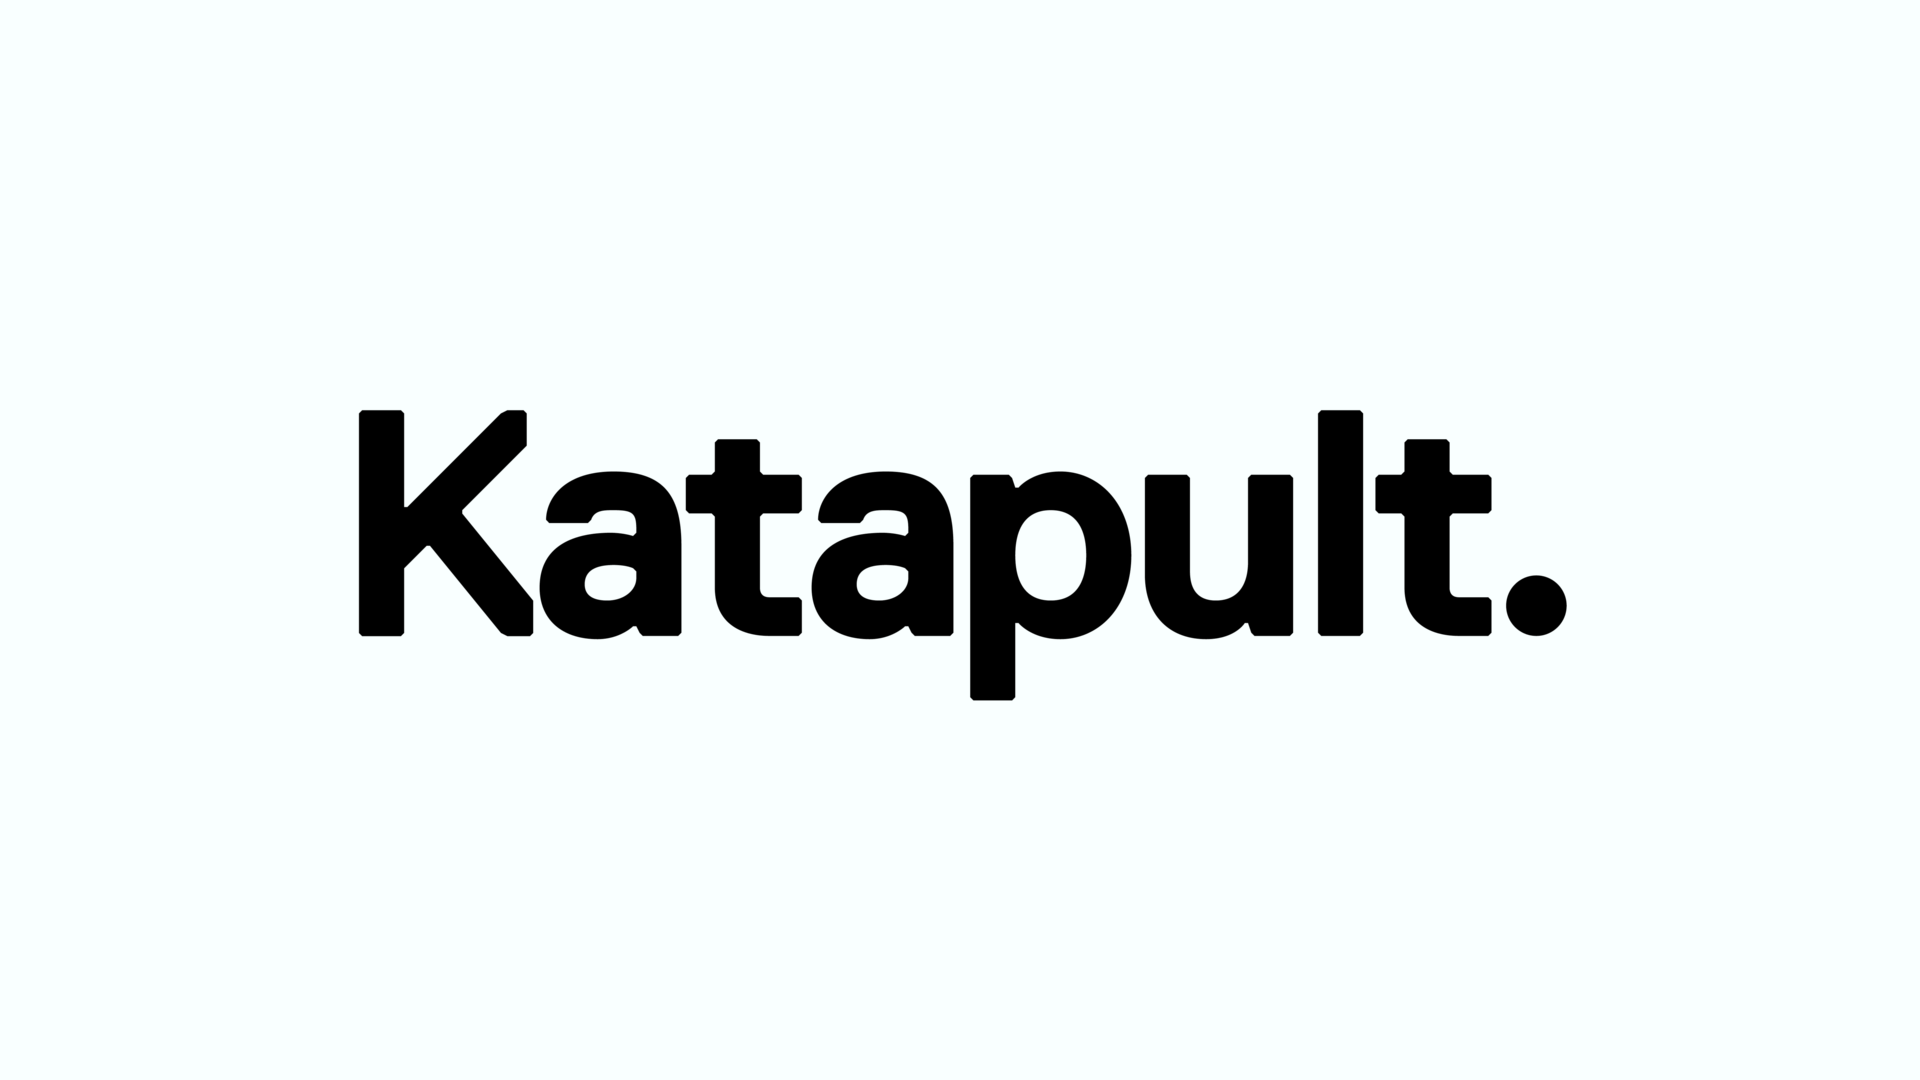 Katapult   Katapult Studio is a digital entertainment company located at  Betaworks  in New York City.